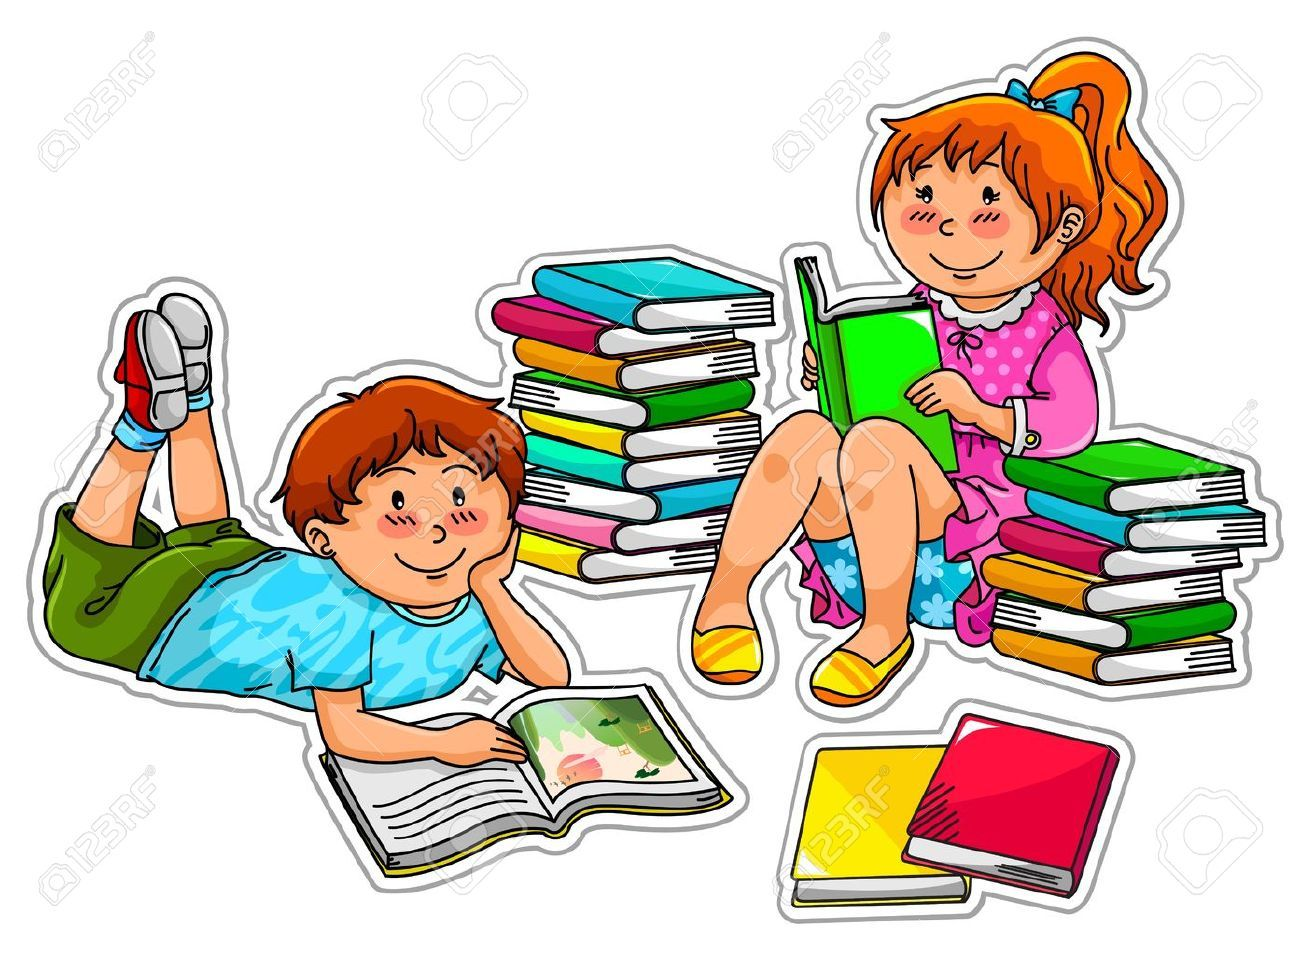 2 children reading clipart image Two kids reading clipart 2 » Clipart Portal image